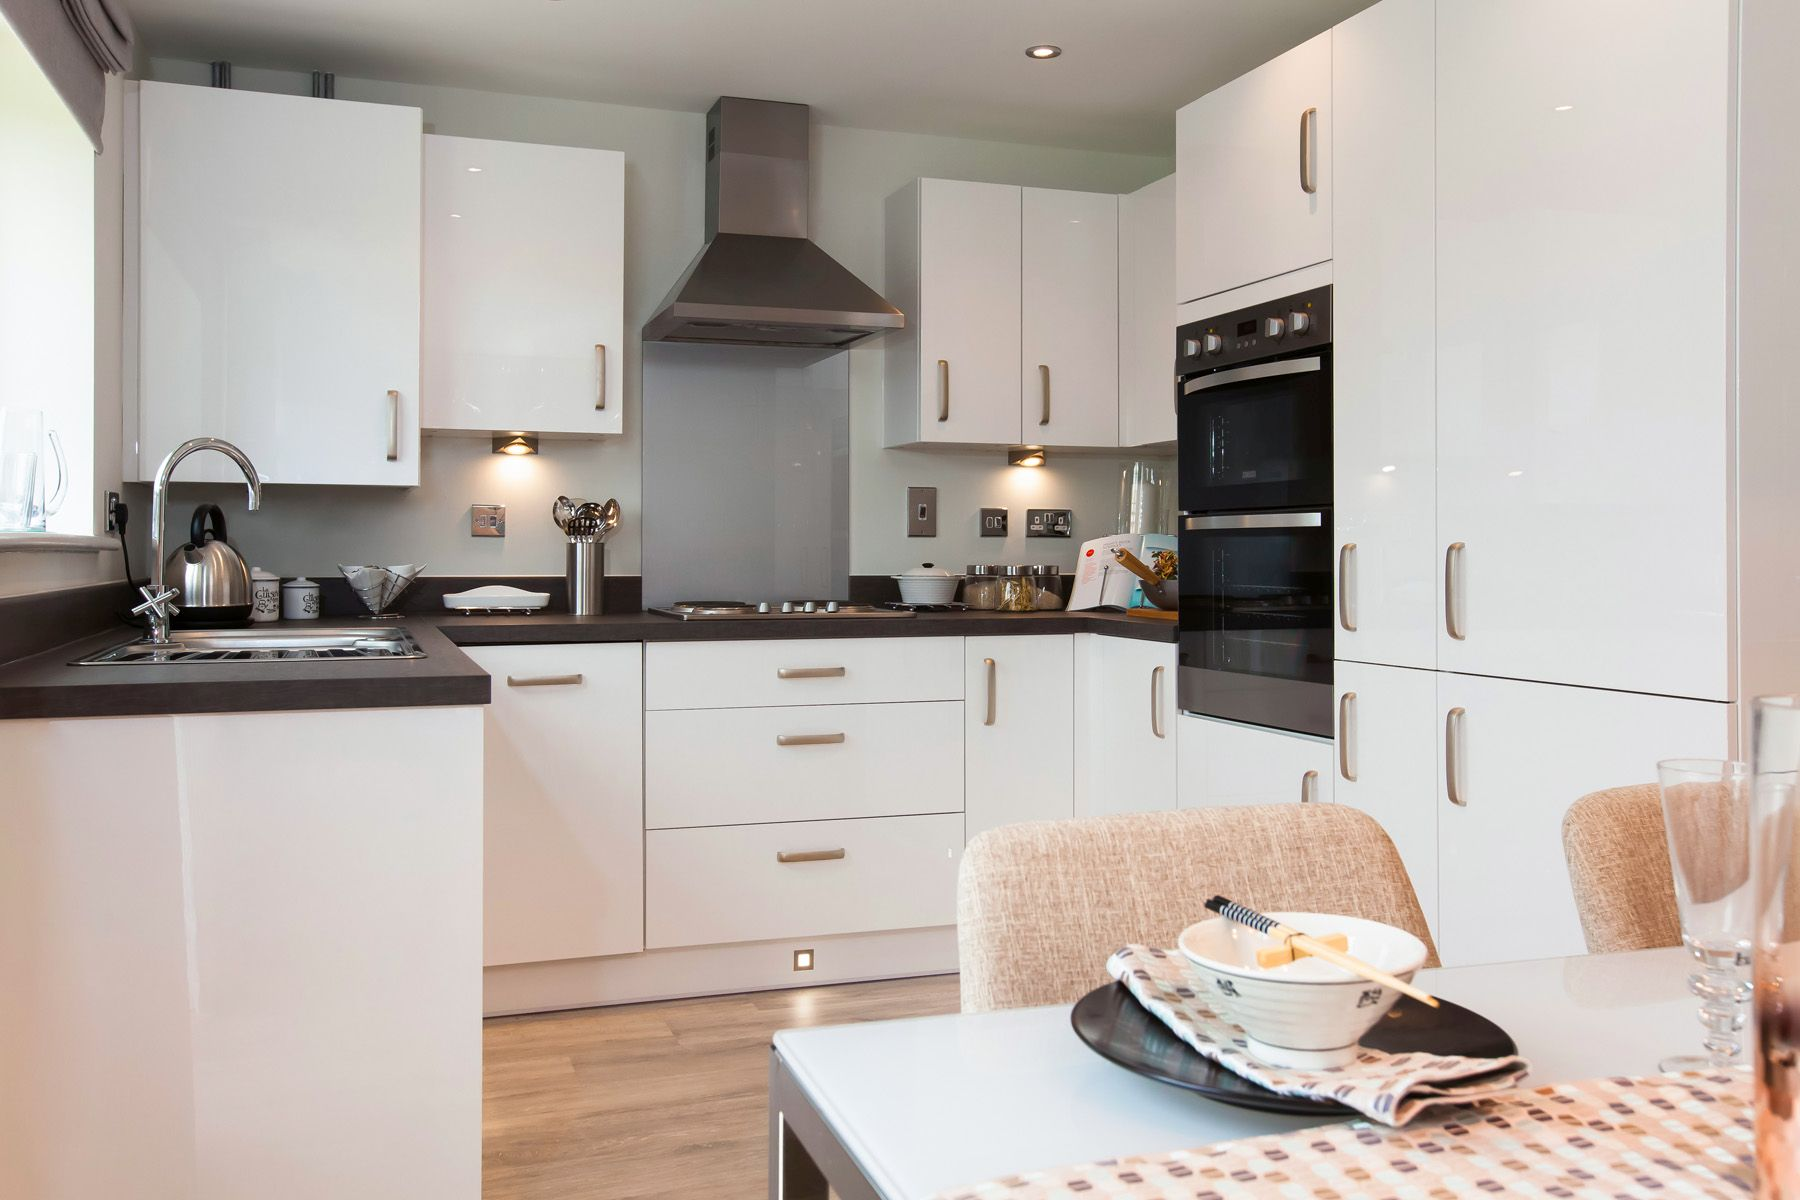 TW Exeter - Sherford - Juniper example kitchen 2